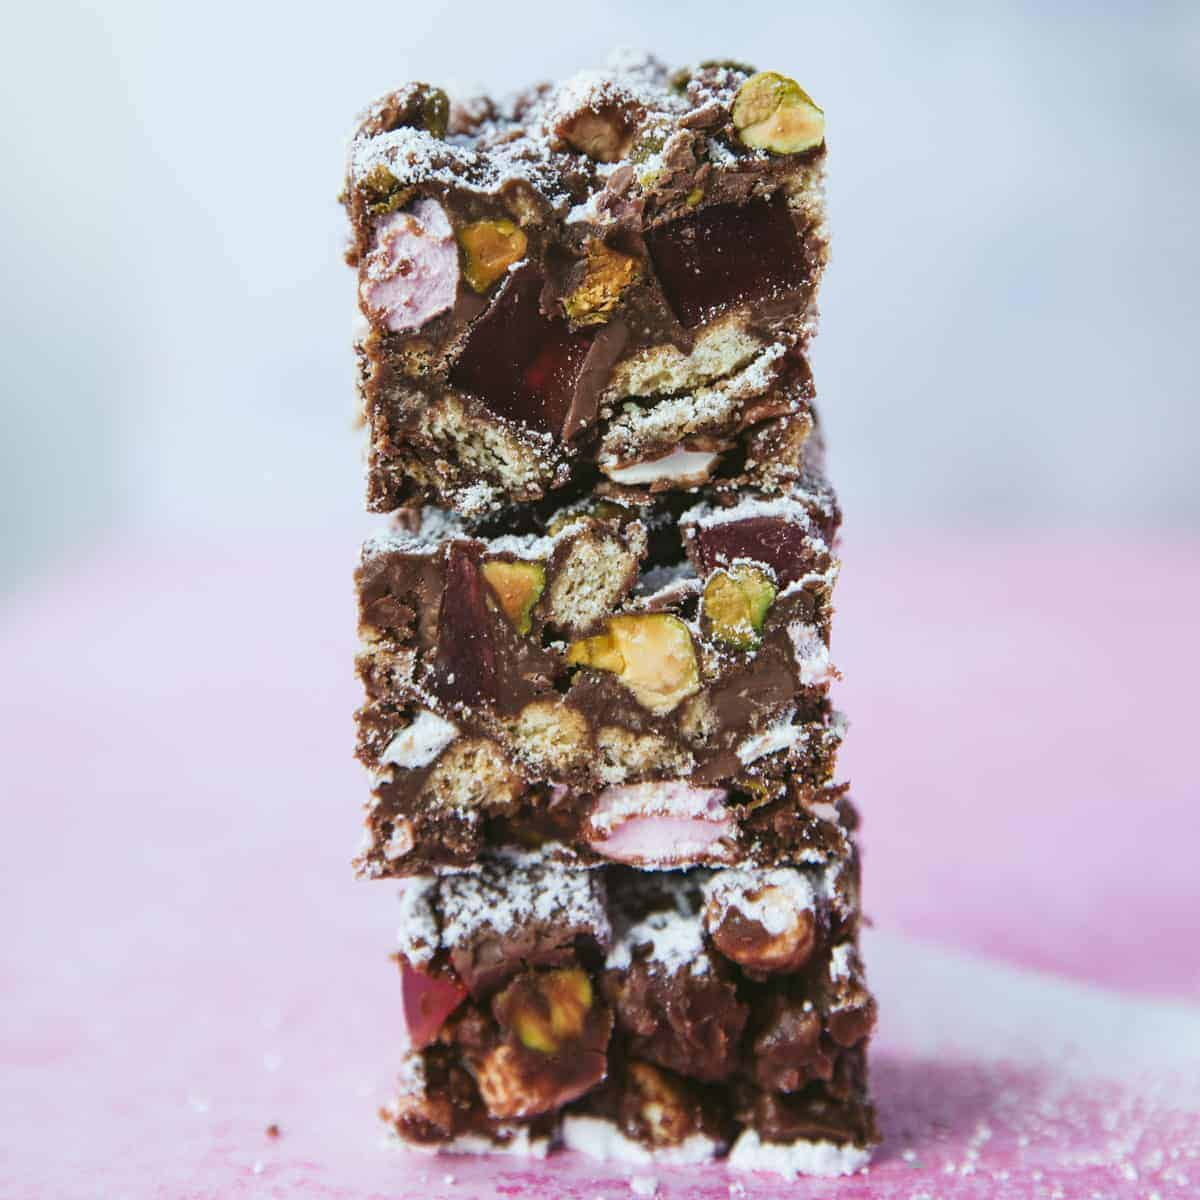 Three pieces of Rocky Road stacked on top of eachother.